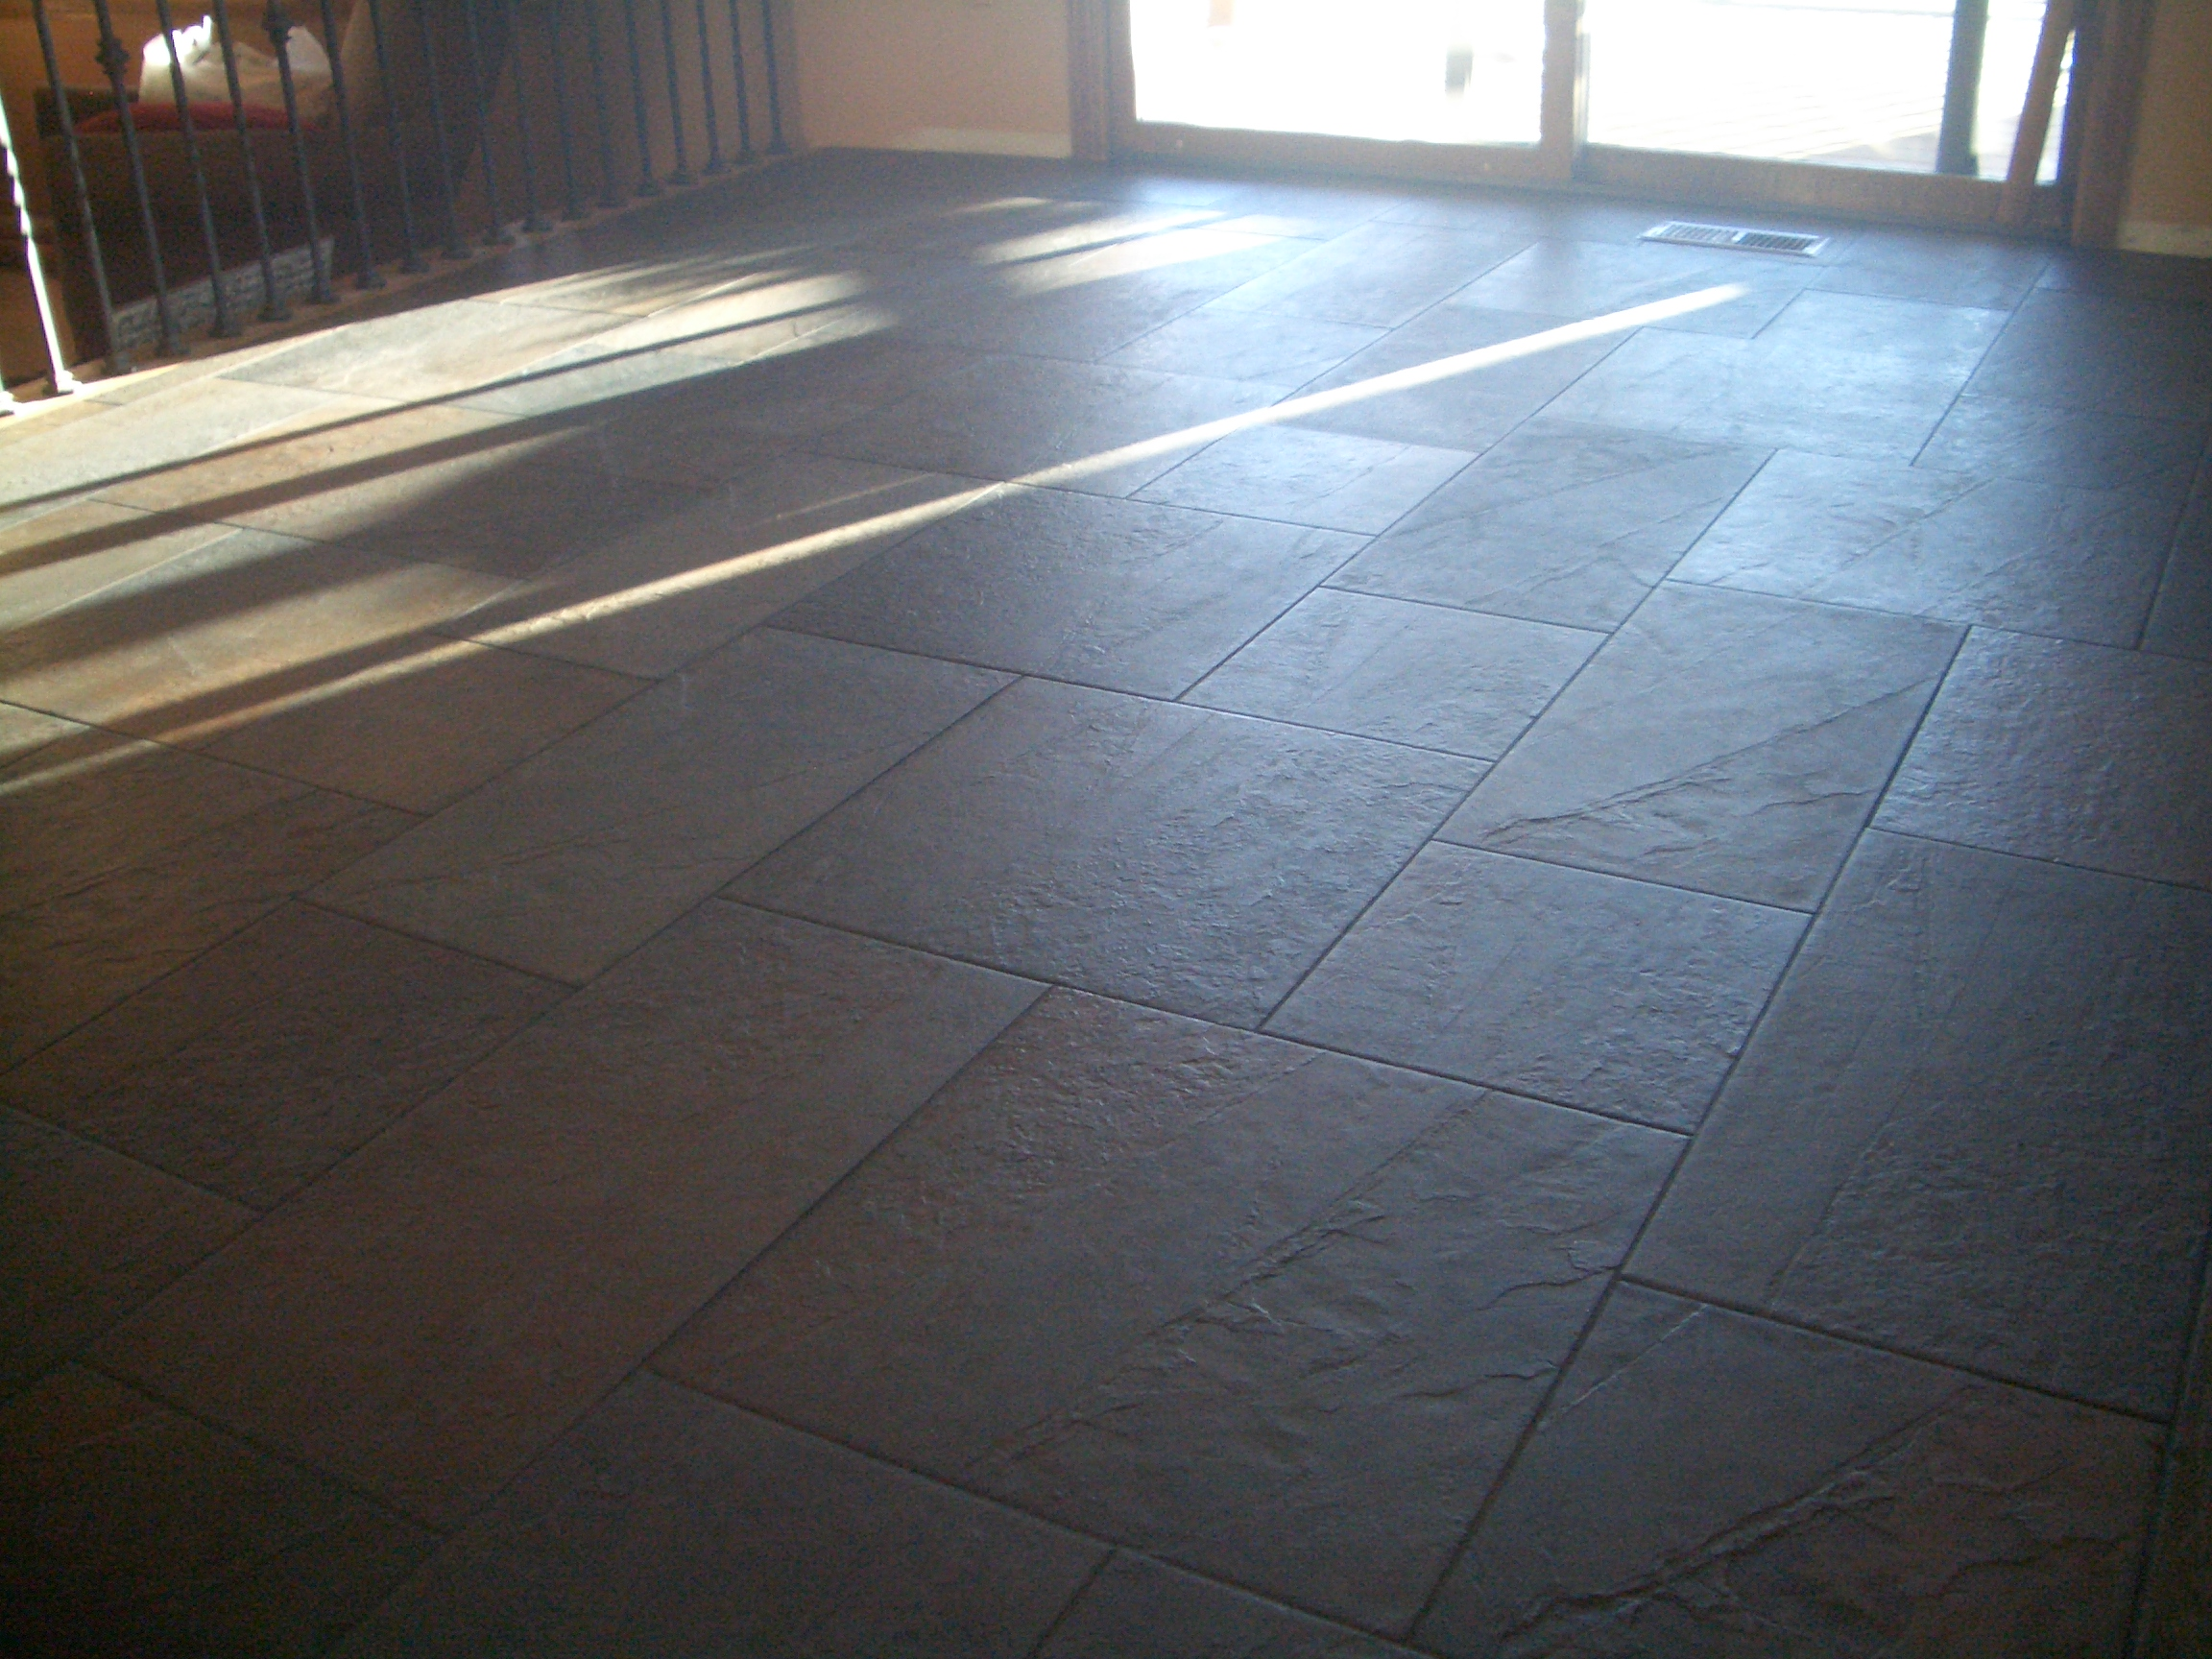 Slate Kitchen Floor Tiles Basketweave Patterned Porcelain Floor In Fort Collins